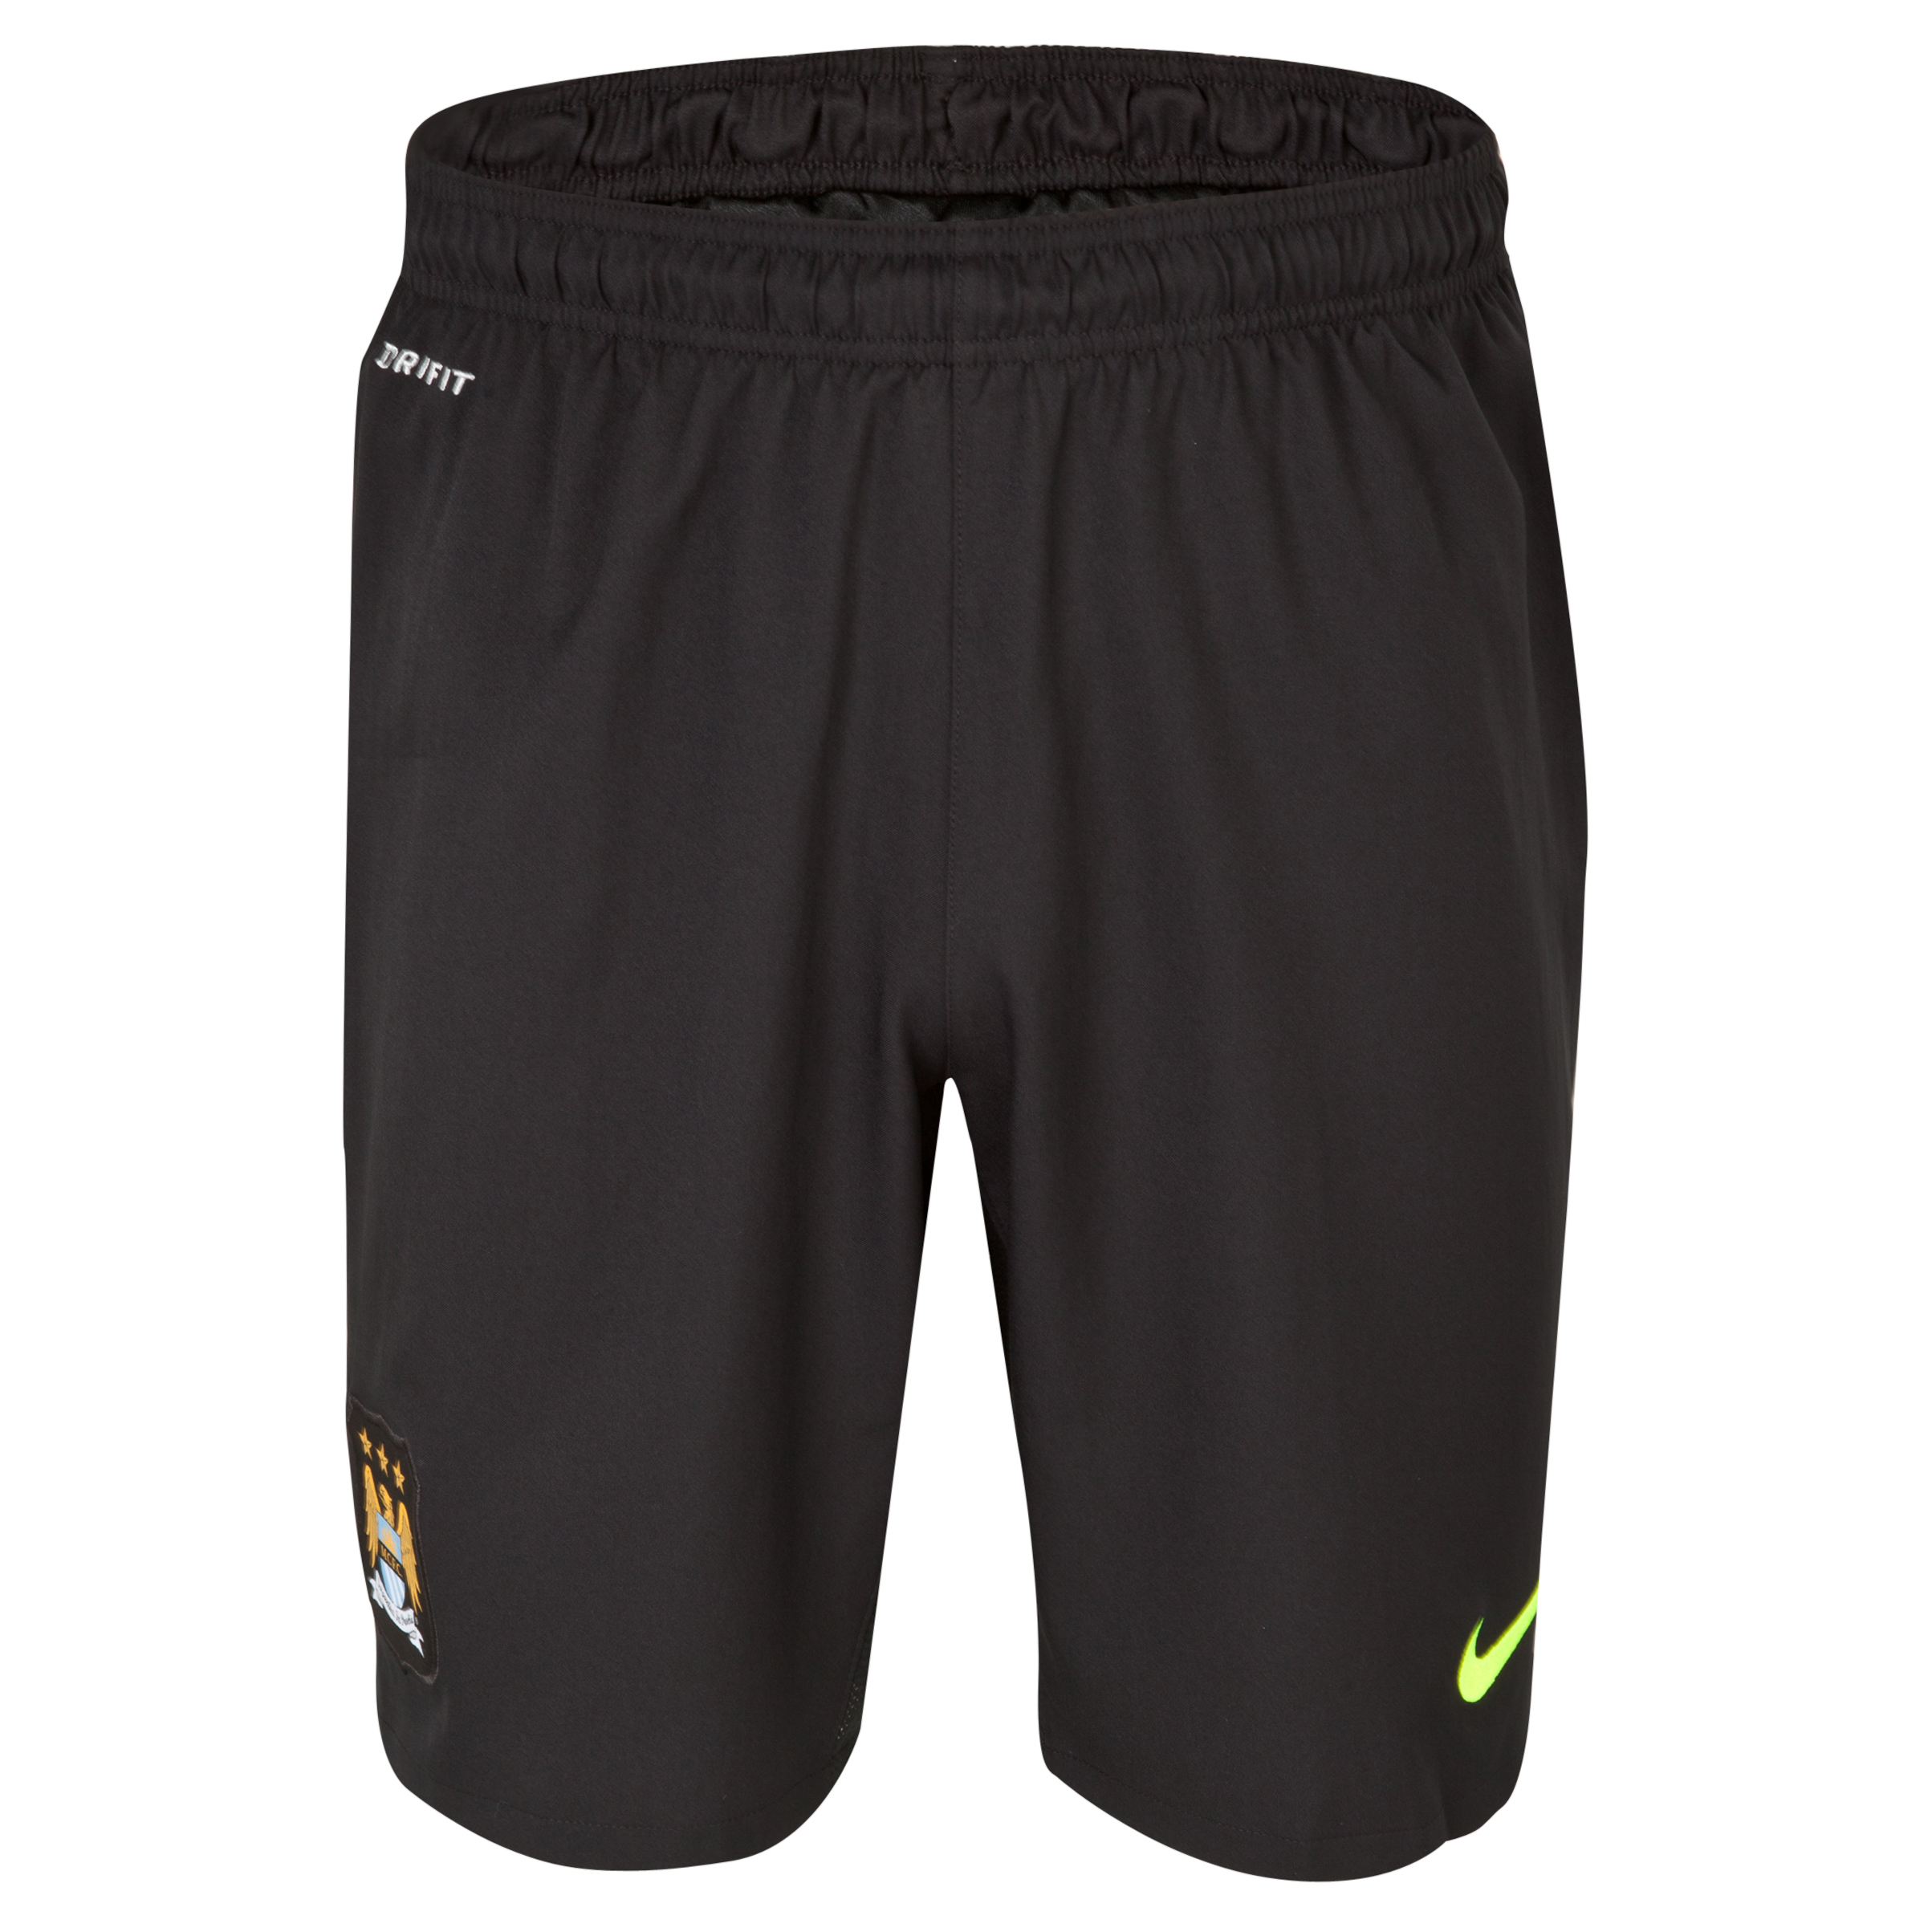 Manchester City Option 2 Goalkeeper Short 2013/14 - Junior - Black